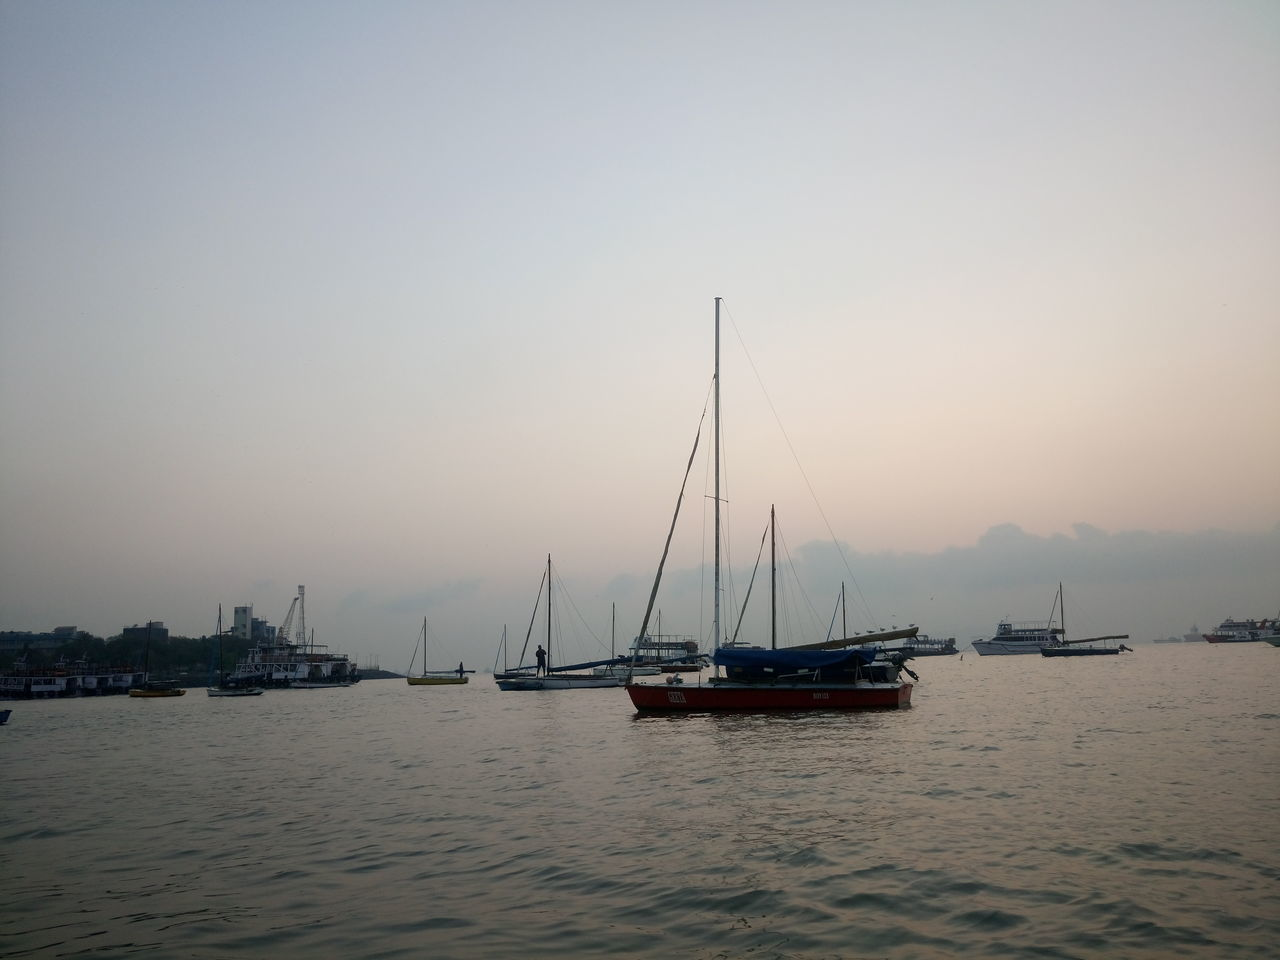 nautical vessel, water, transportation, mode of transport, mast, boat, sailboat, outdoors, nature, moored, no people, tranquility, sea, waterfront, travel destinations, harbor, scenics, sunset, tranquil scene, clear sky, sky, beauty in nature, sailing, day, yacht, architecture, sailing ship, tall ship